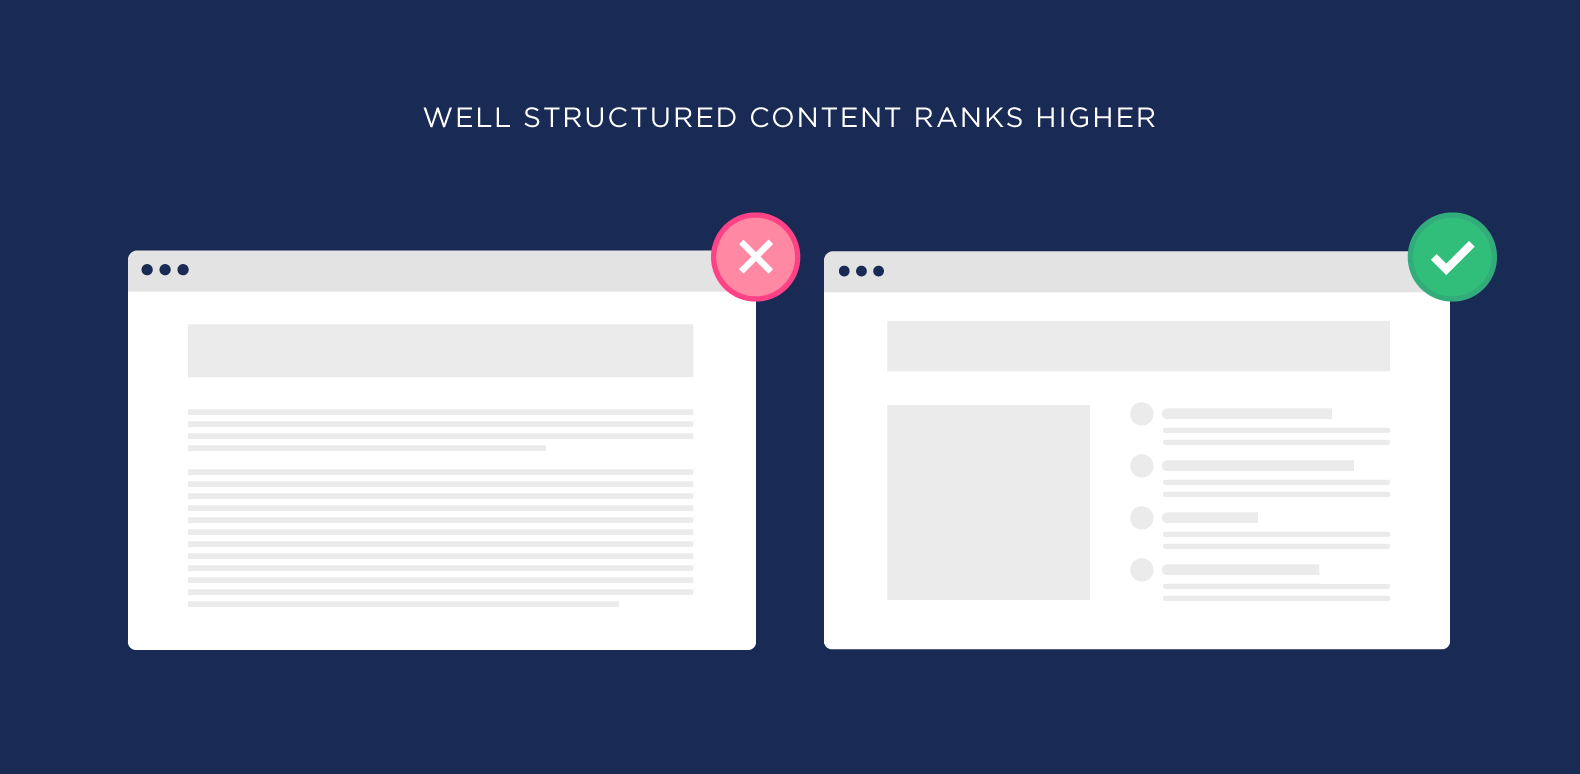 Well-structured content ranks higher